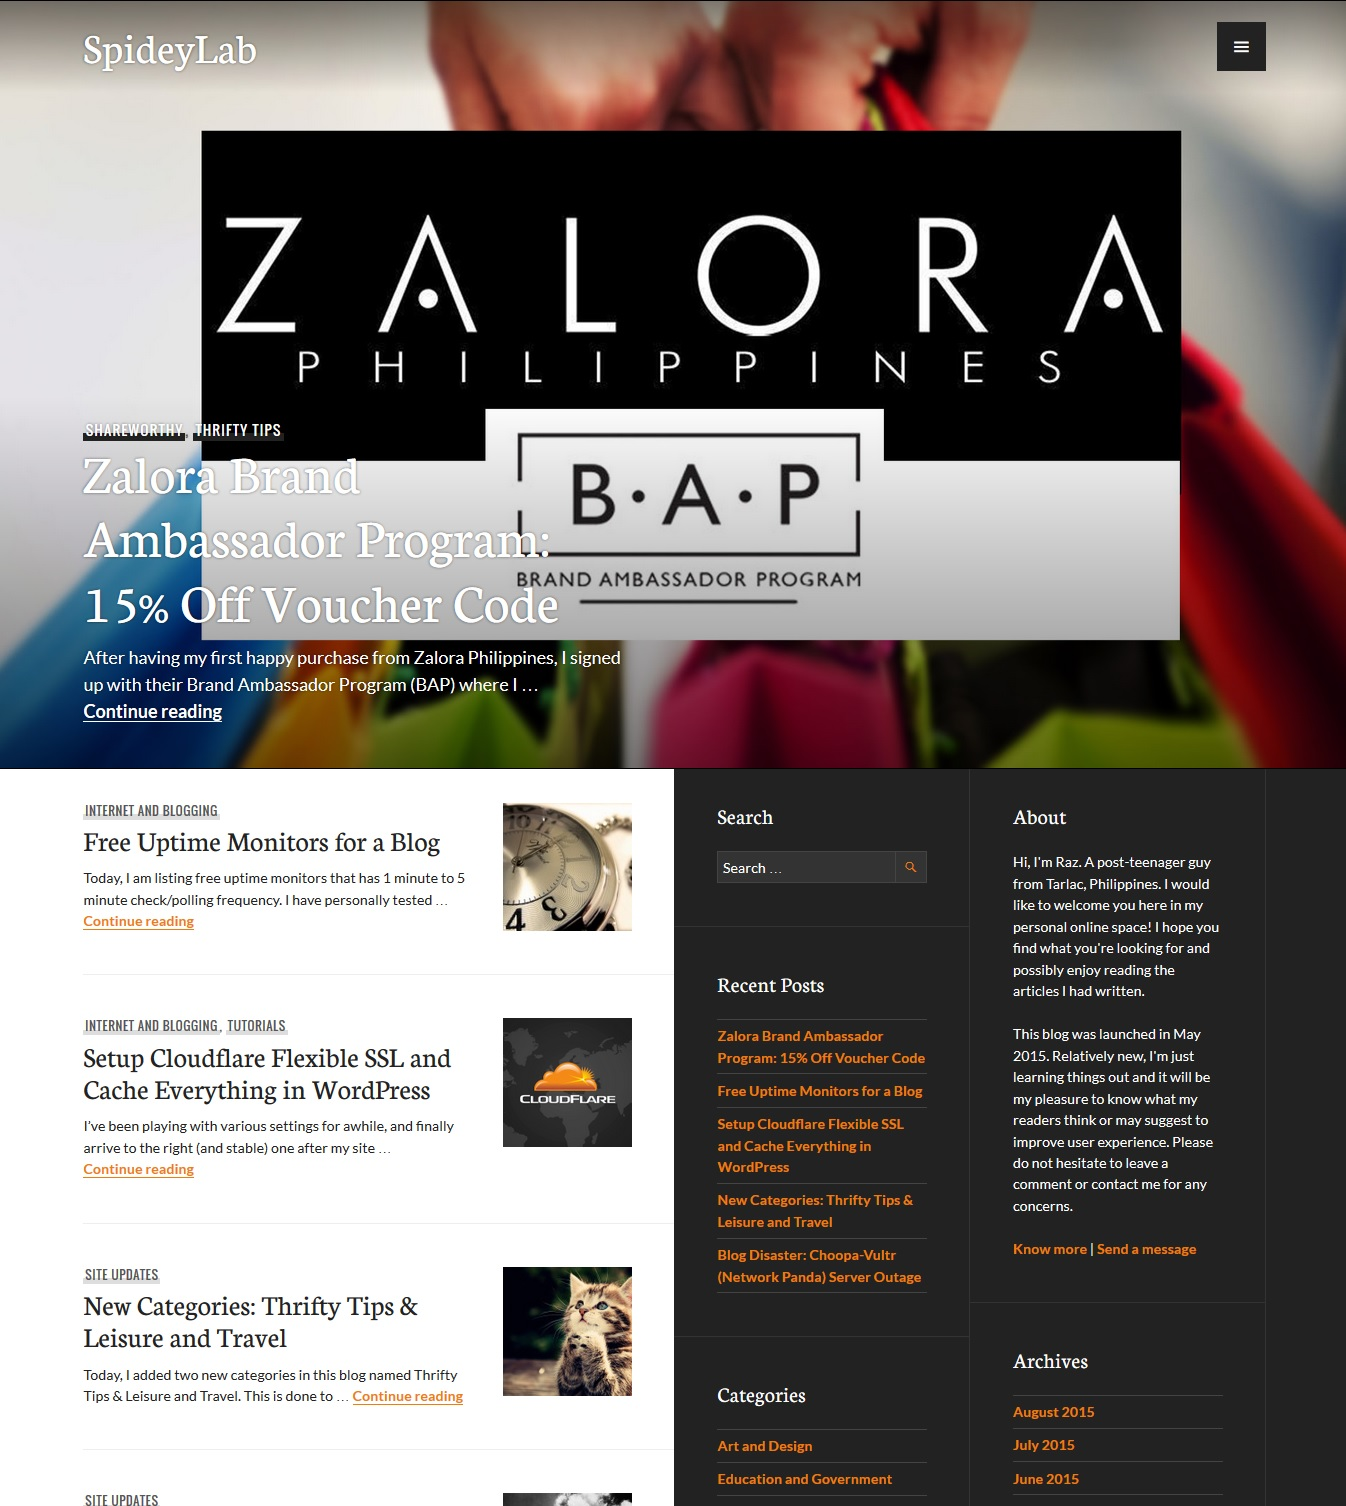 Google themes bap